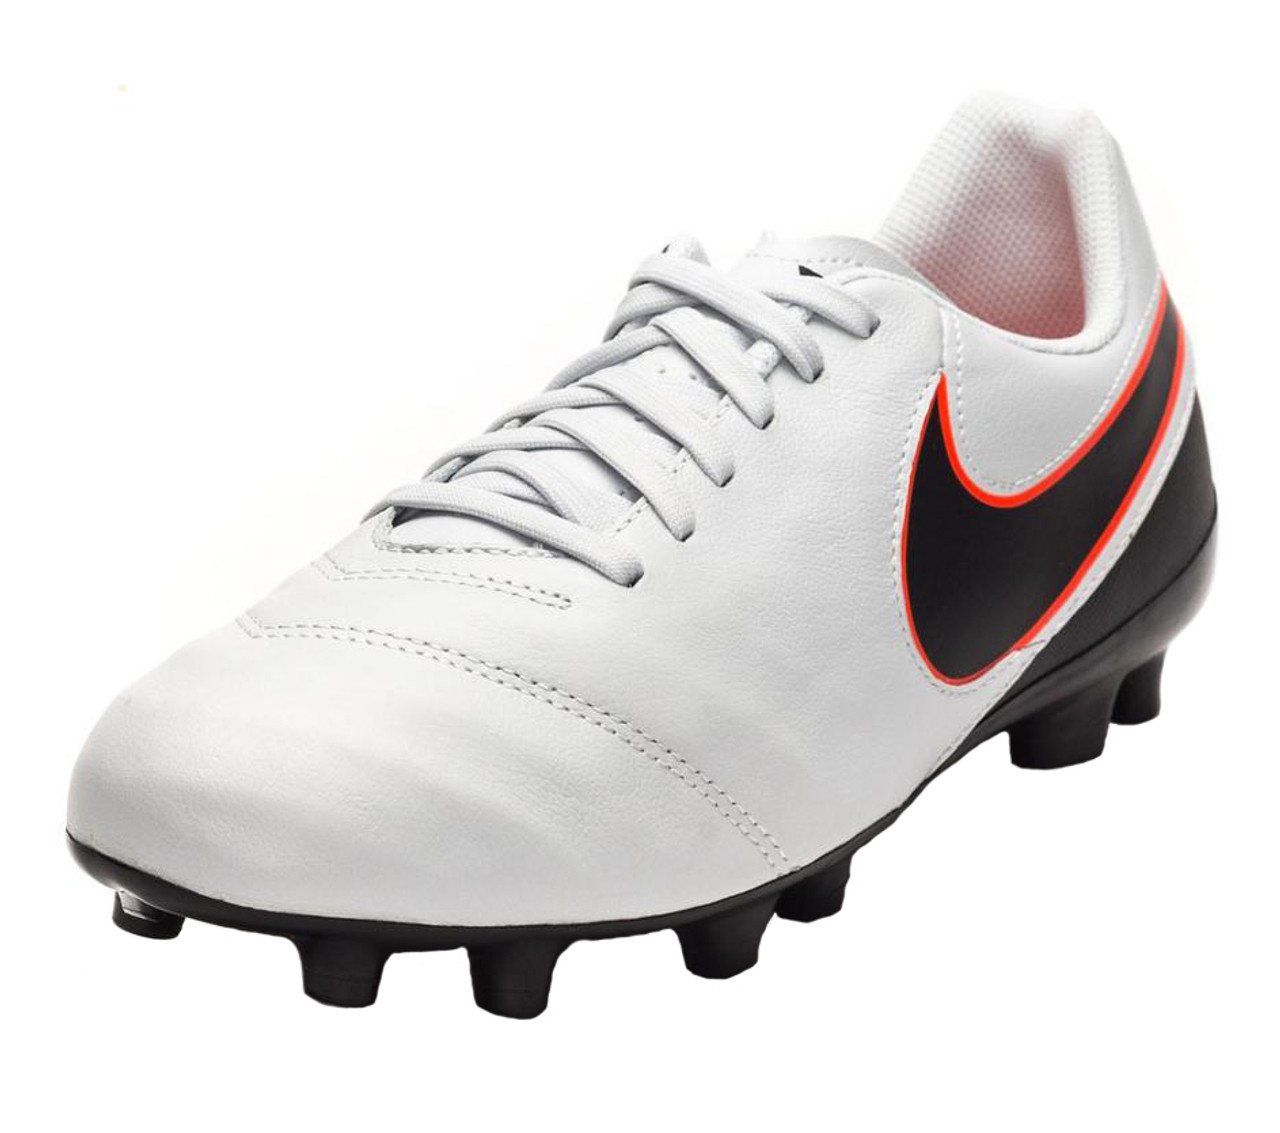 4c6fef141376 Nike Jr Tiempo Legend VI FG - Pure Platinum Black Metallic Silver Hyper  Orange - ohp soccer